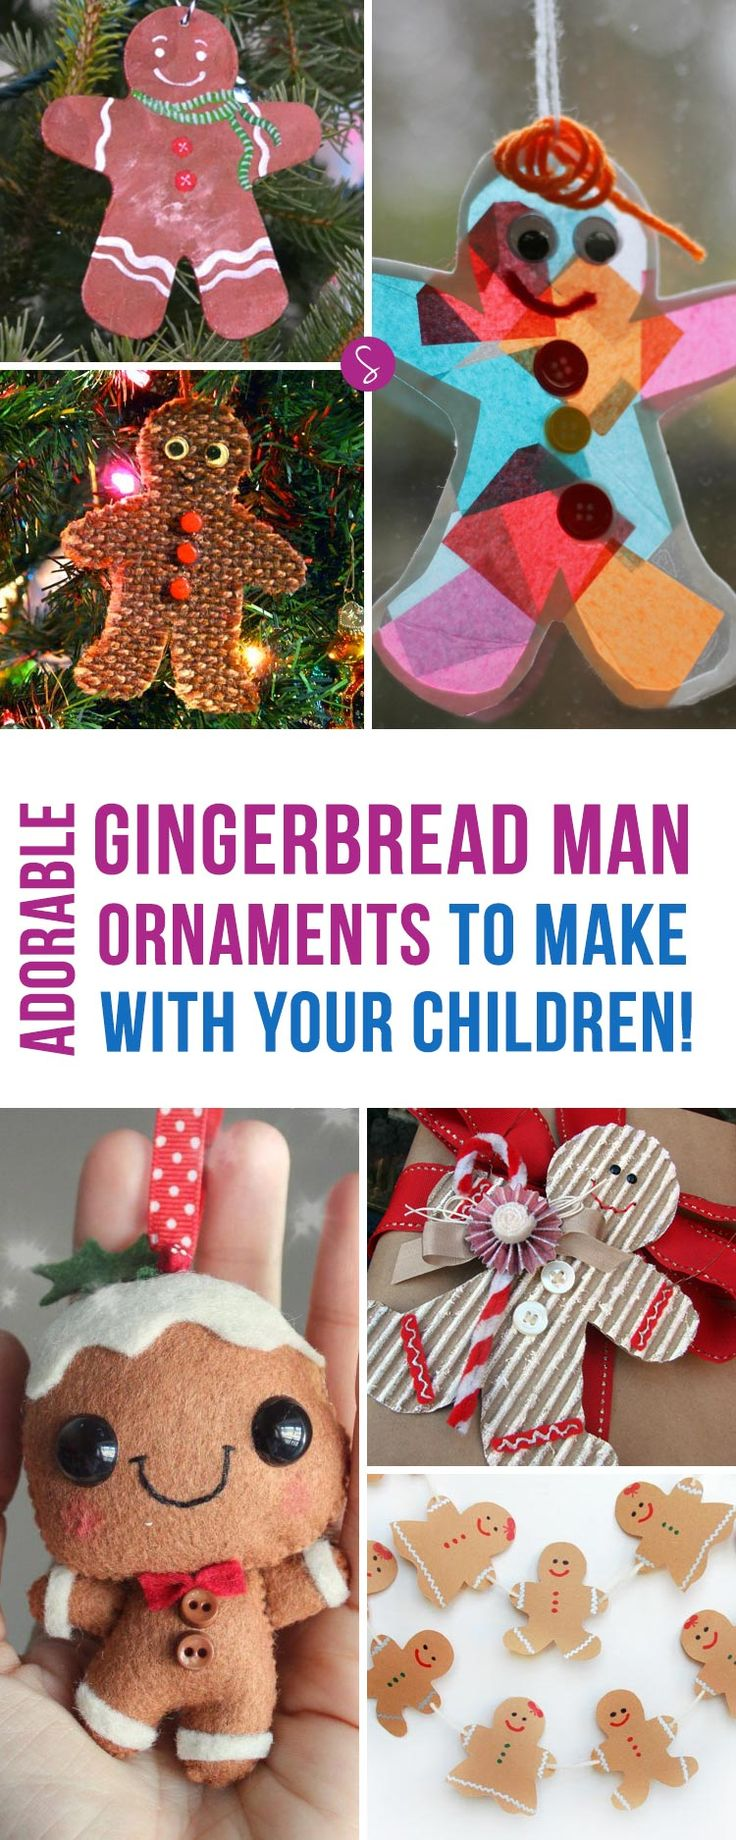 Easy christmas ornaments for kids to make - Adorable Gingerbread Man Ornaments For Kids To Make